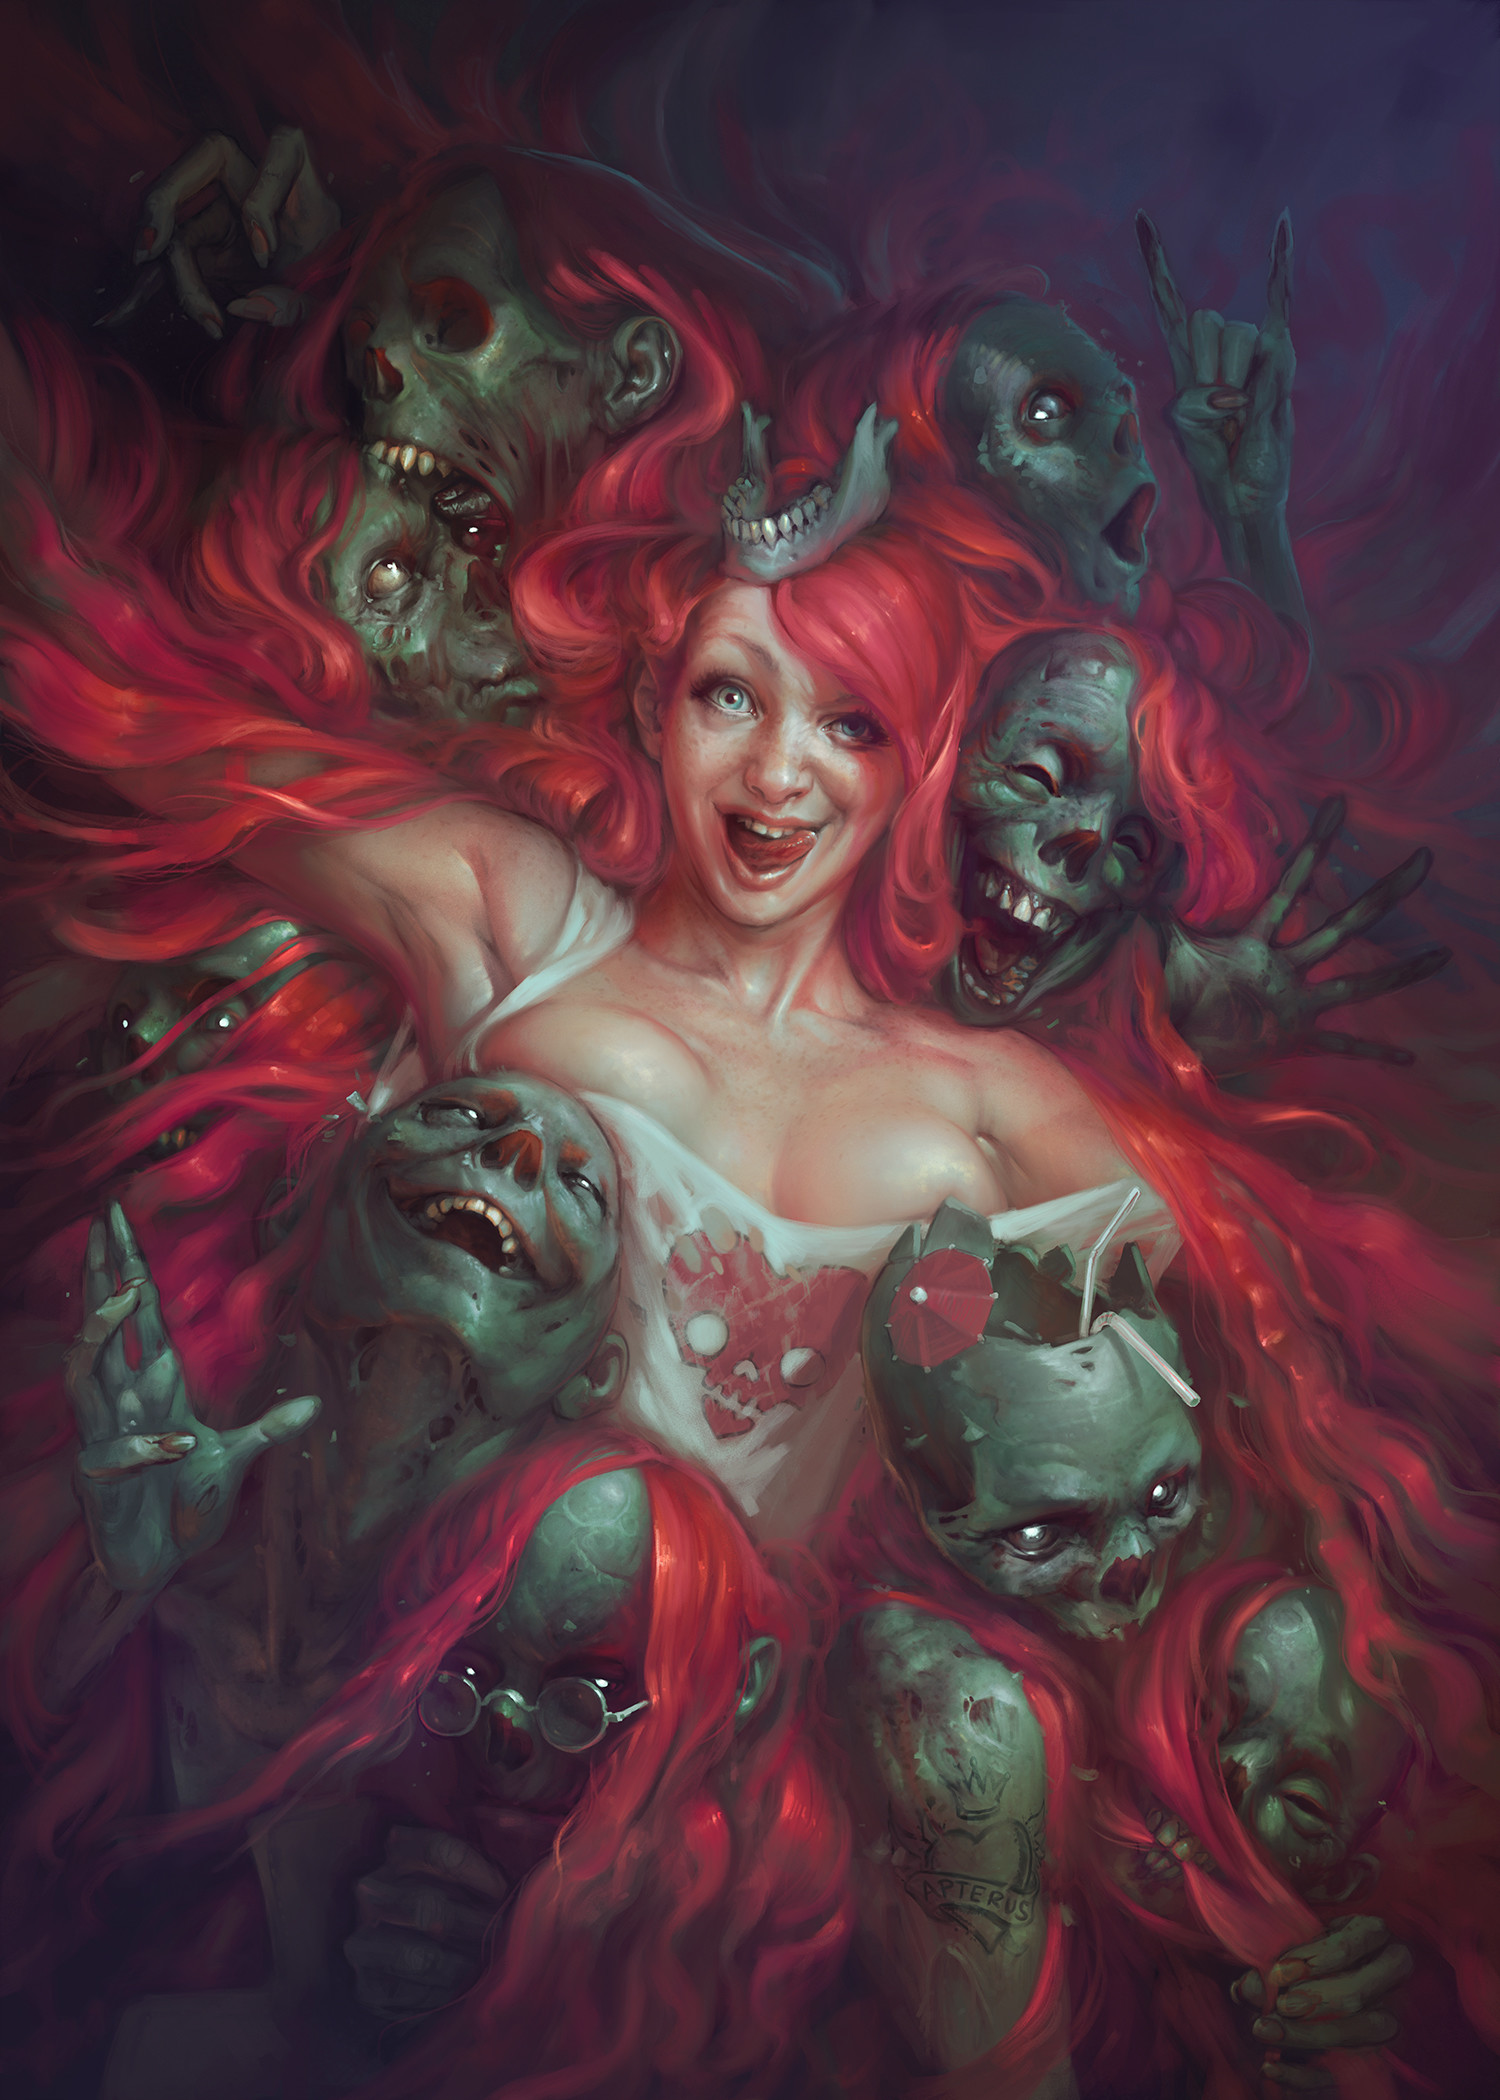 the amazing dark fantasy art of sabbas apterus digital artist